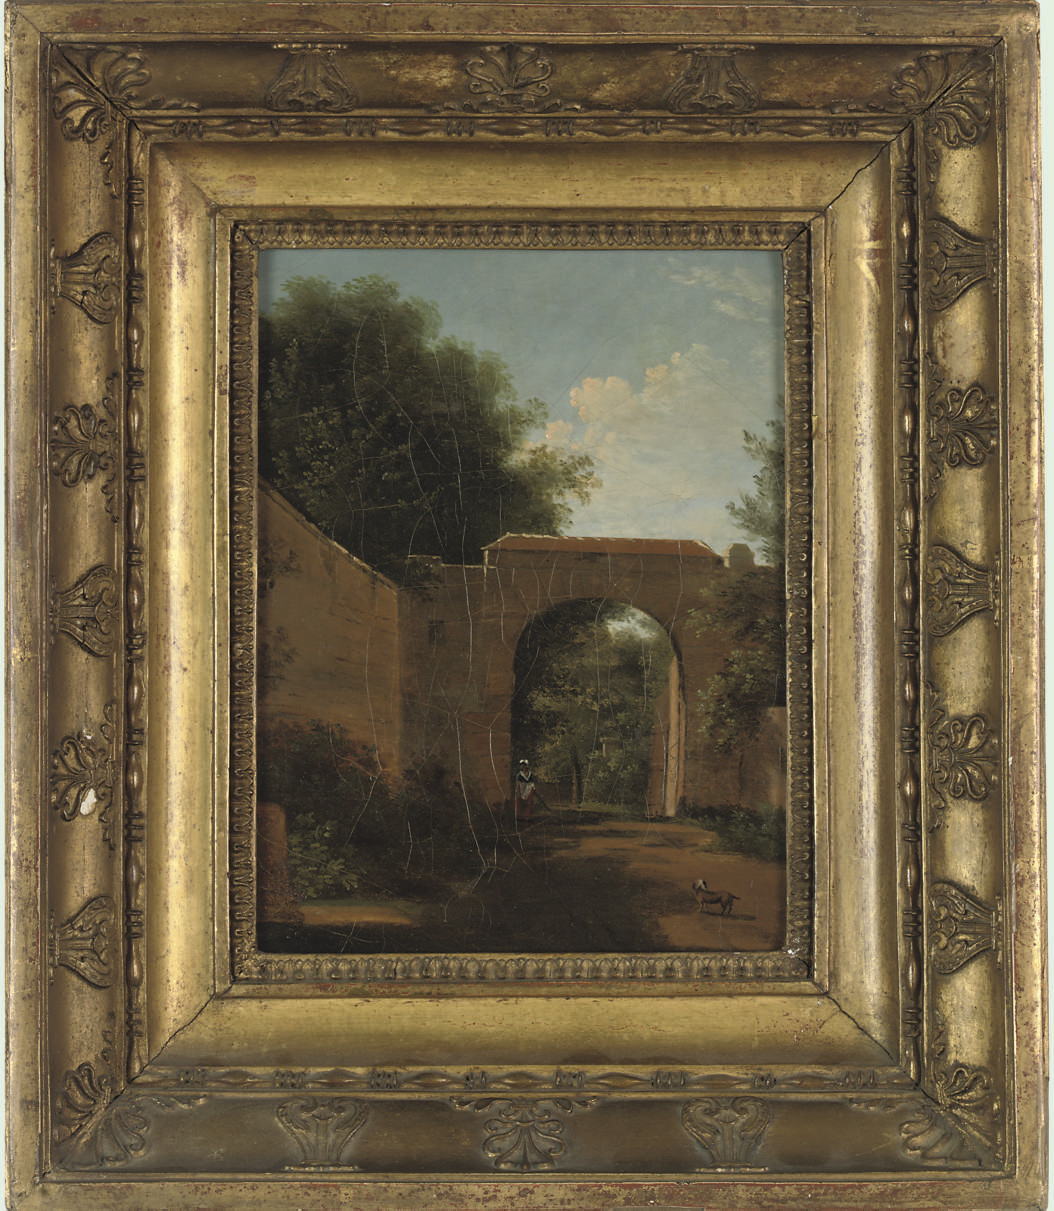 A French arch, thought to be the entrance to St. Cloud, Paris